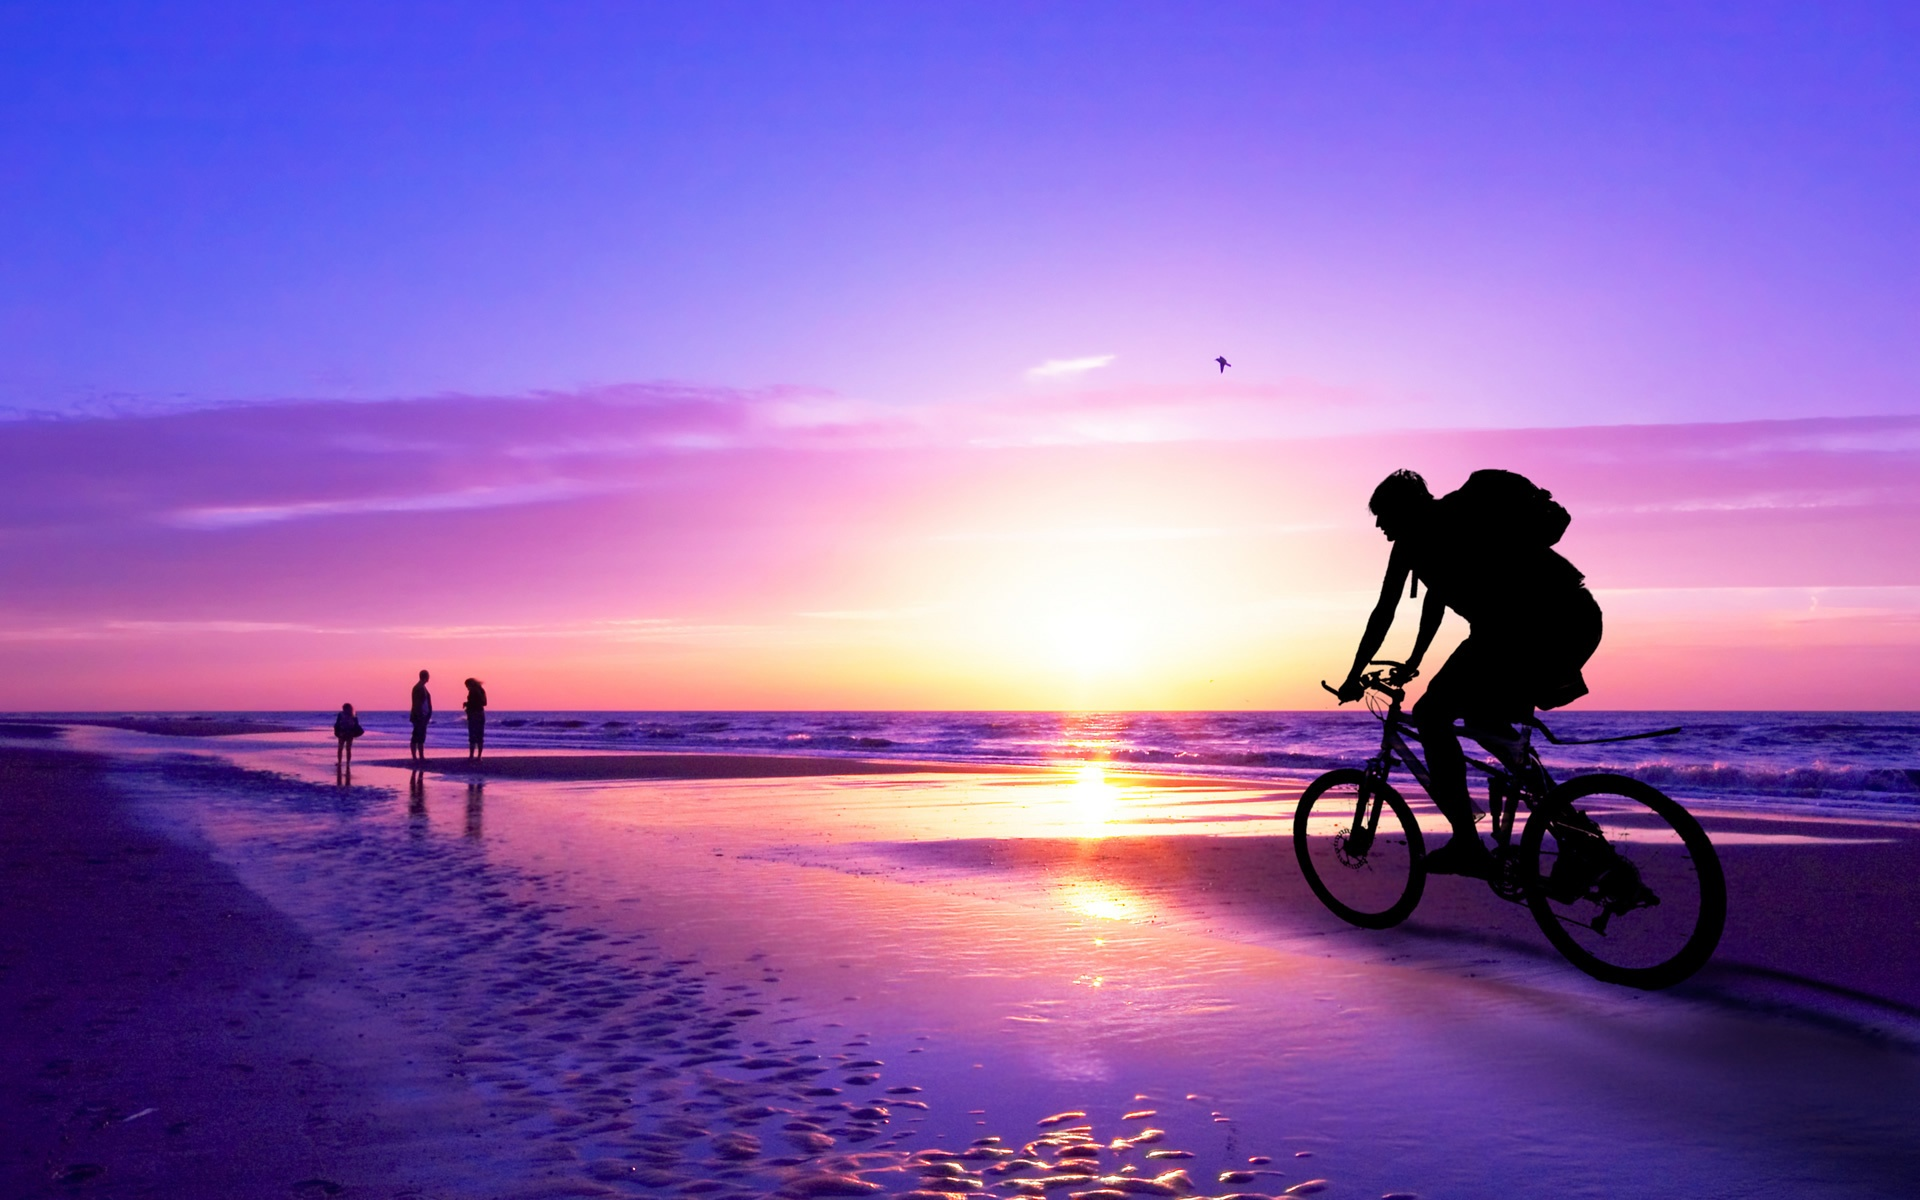 bicycle on sea beach wallpapers - 1920x1200 - 454569